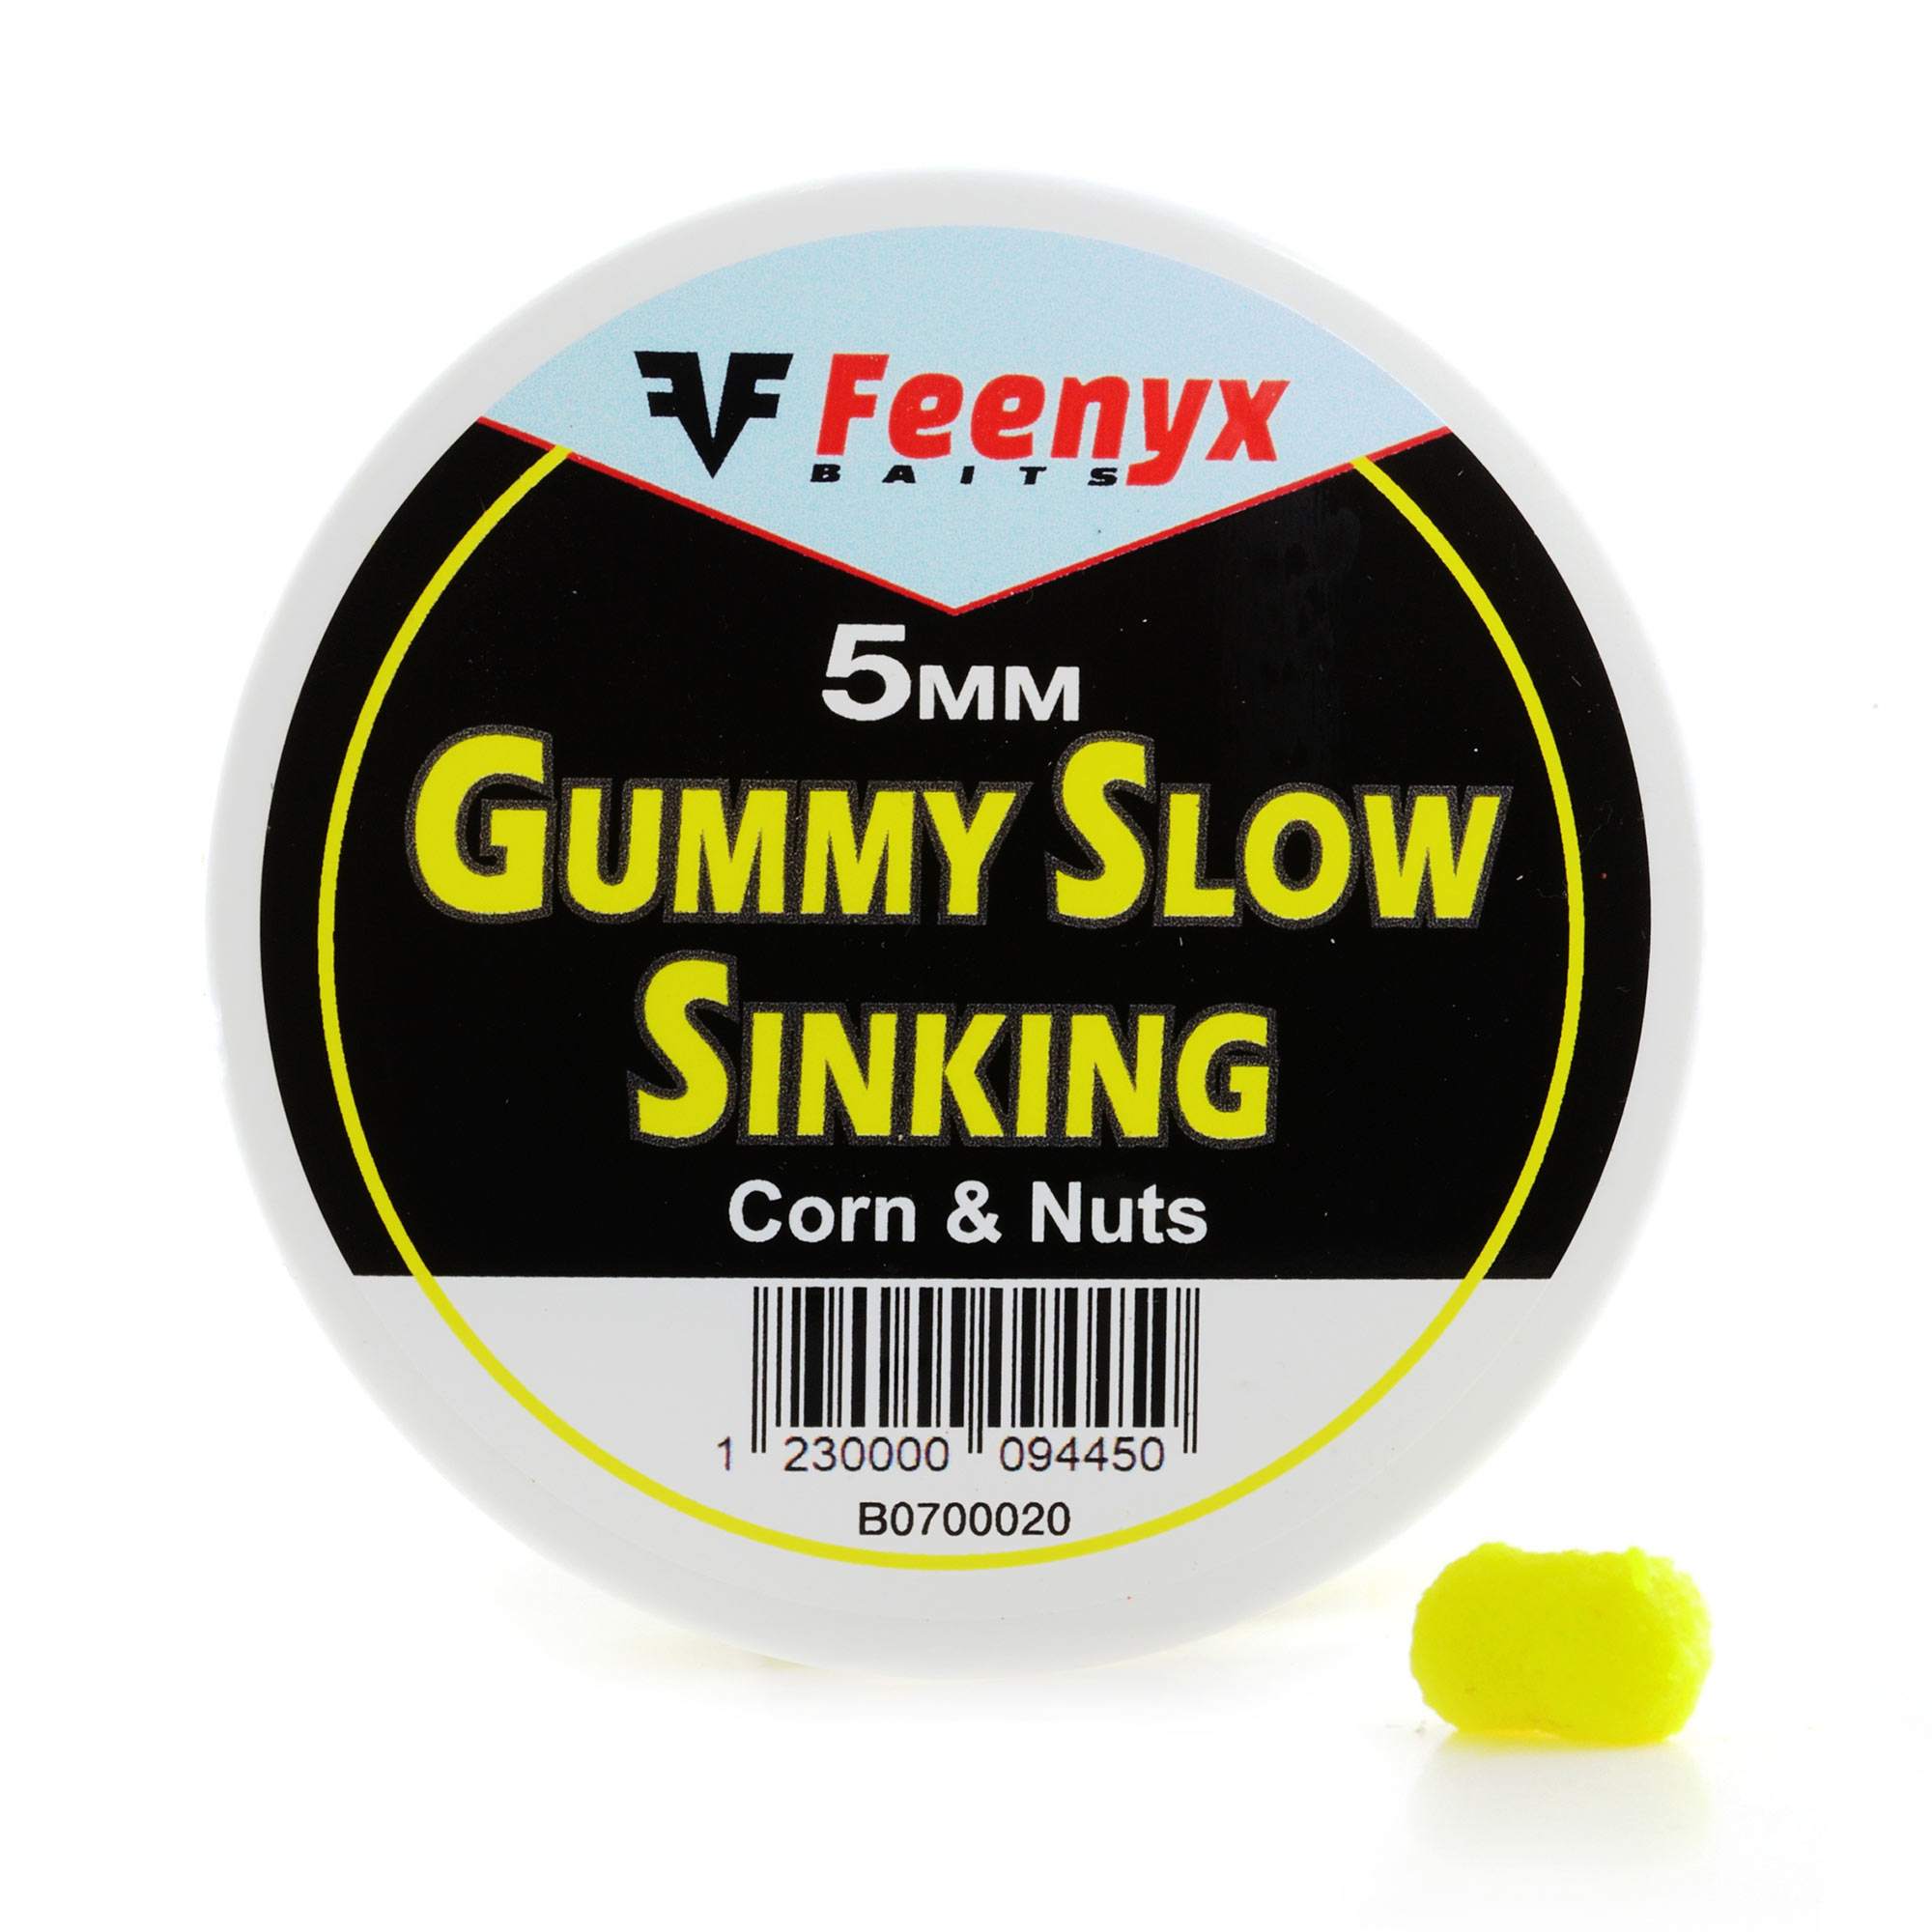 Gummy Slow Sinking Corn & Nuts 5mm FEENYX BAIT